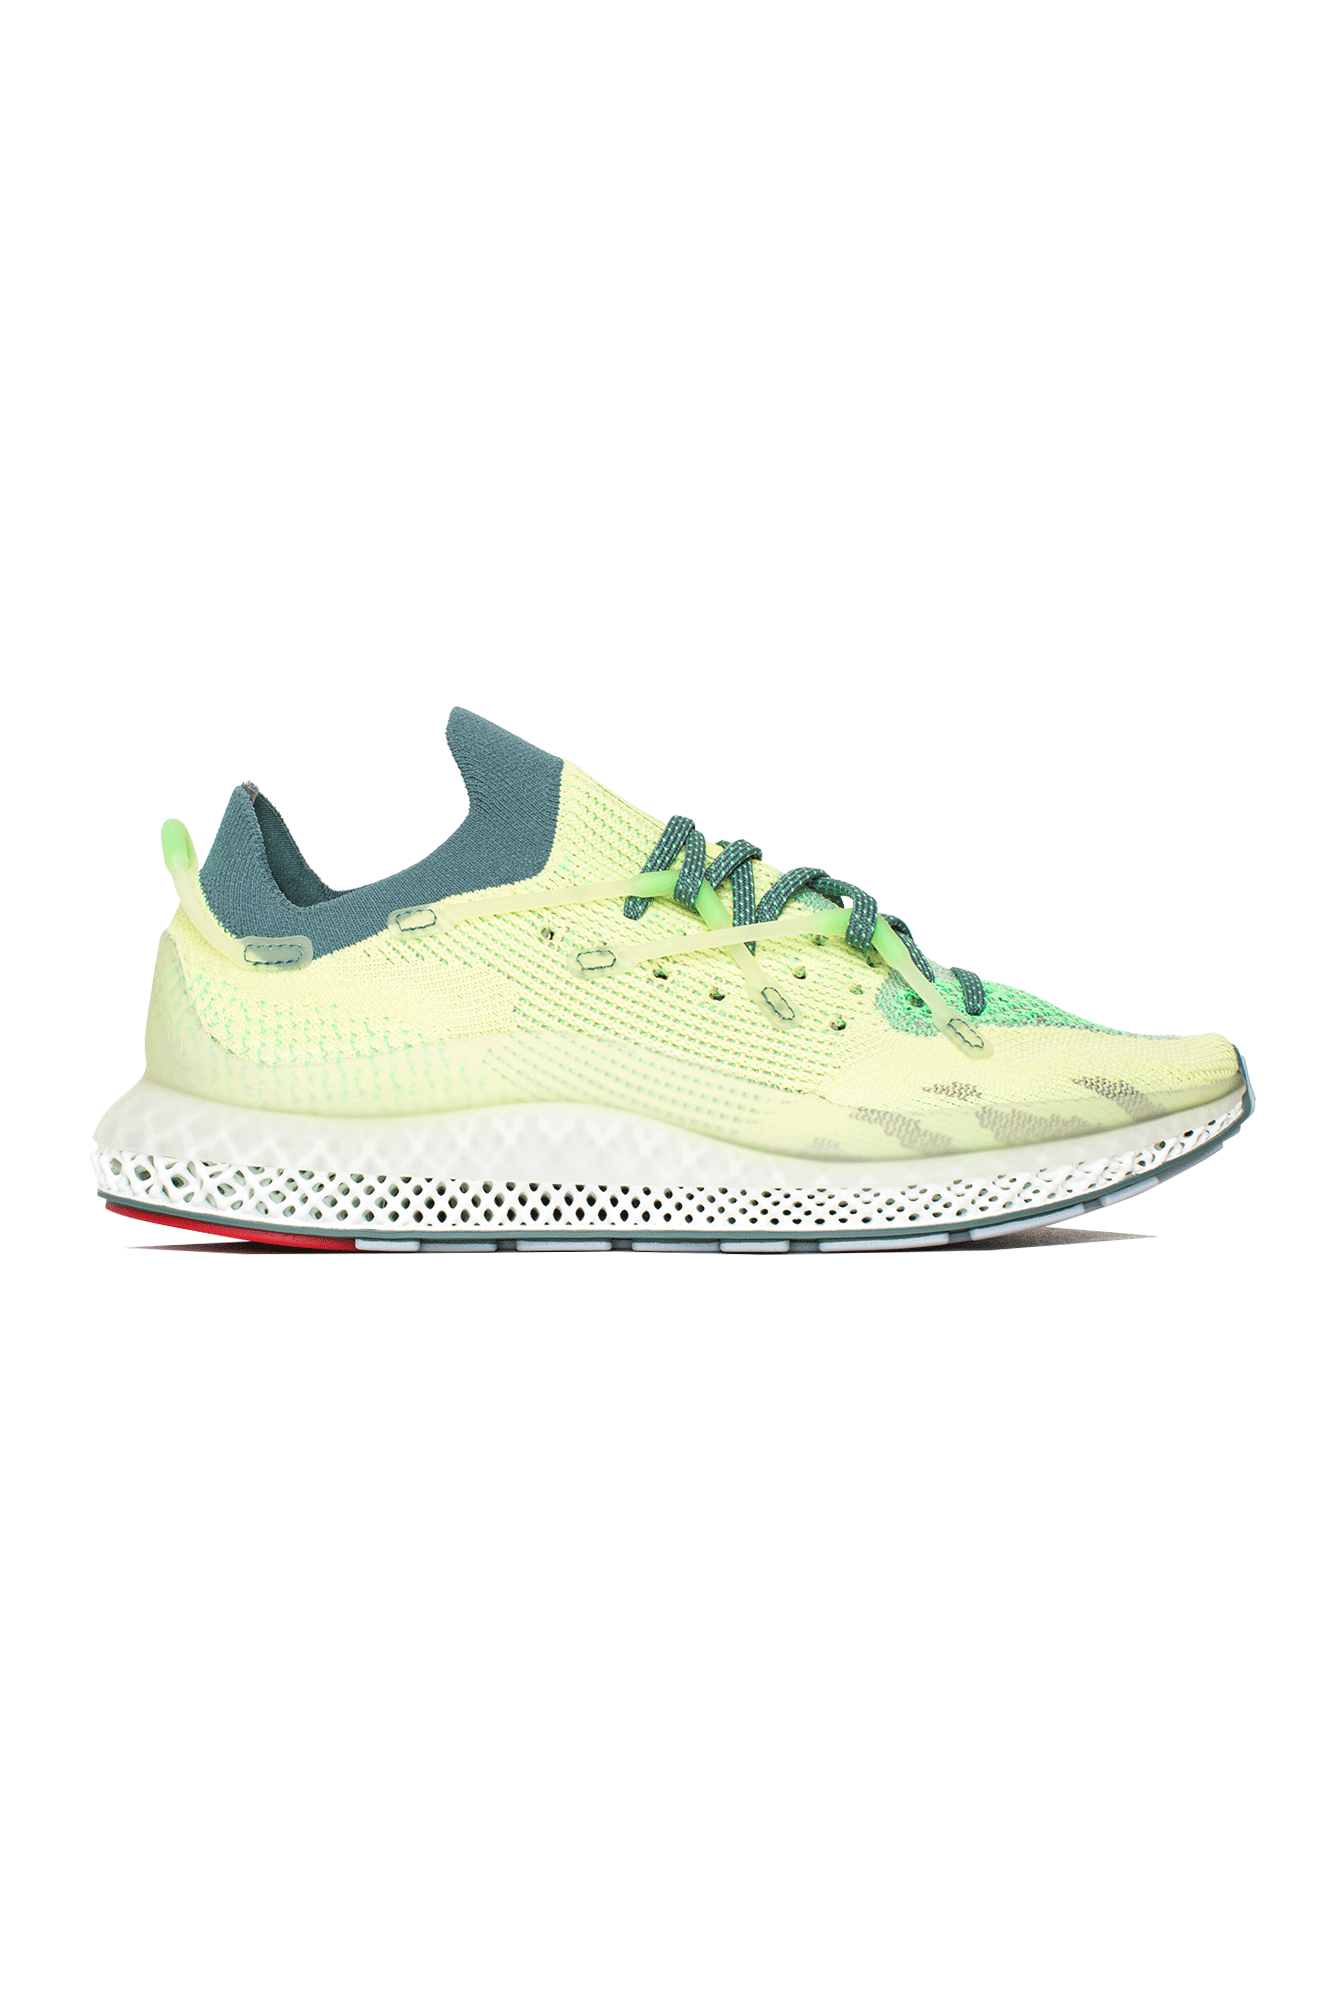 Adidas Originals Sneakers 4D Fusio Yellow FY3603#000#SFZYLL#7,5 - One Block Down